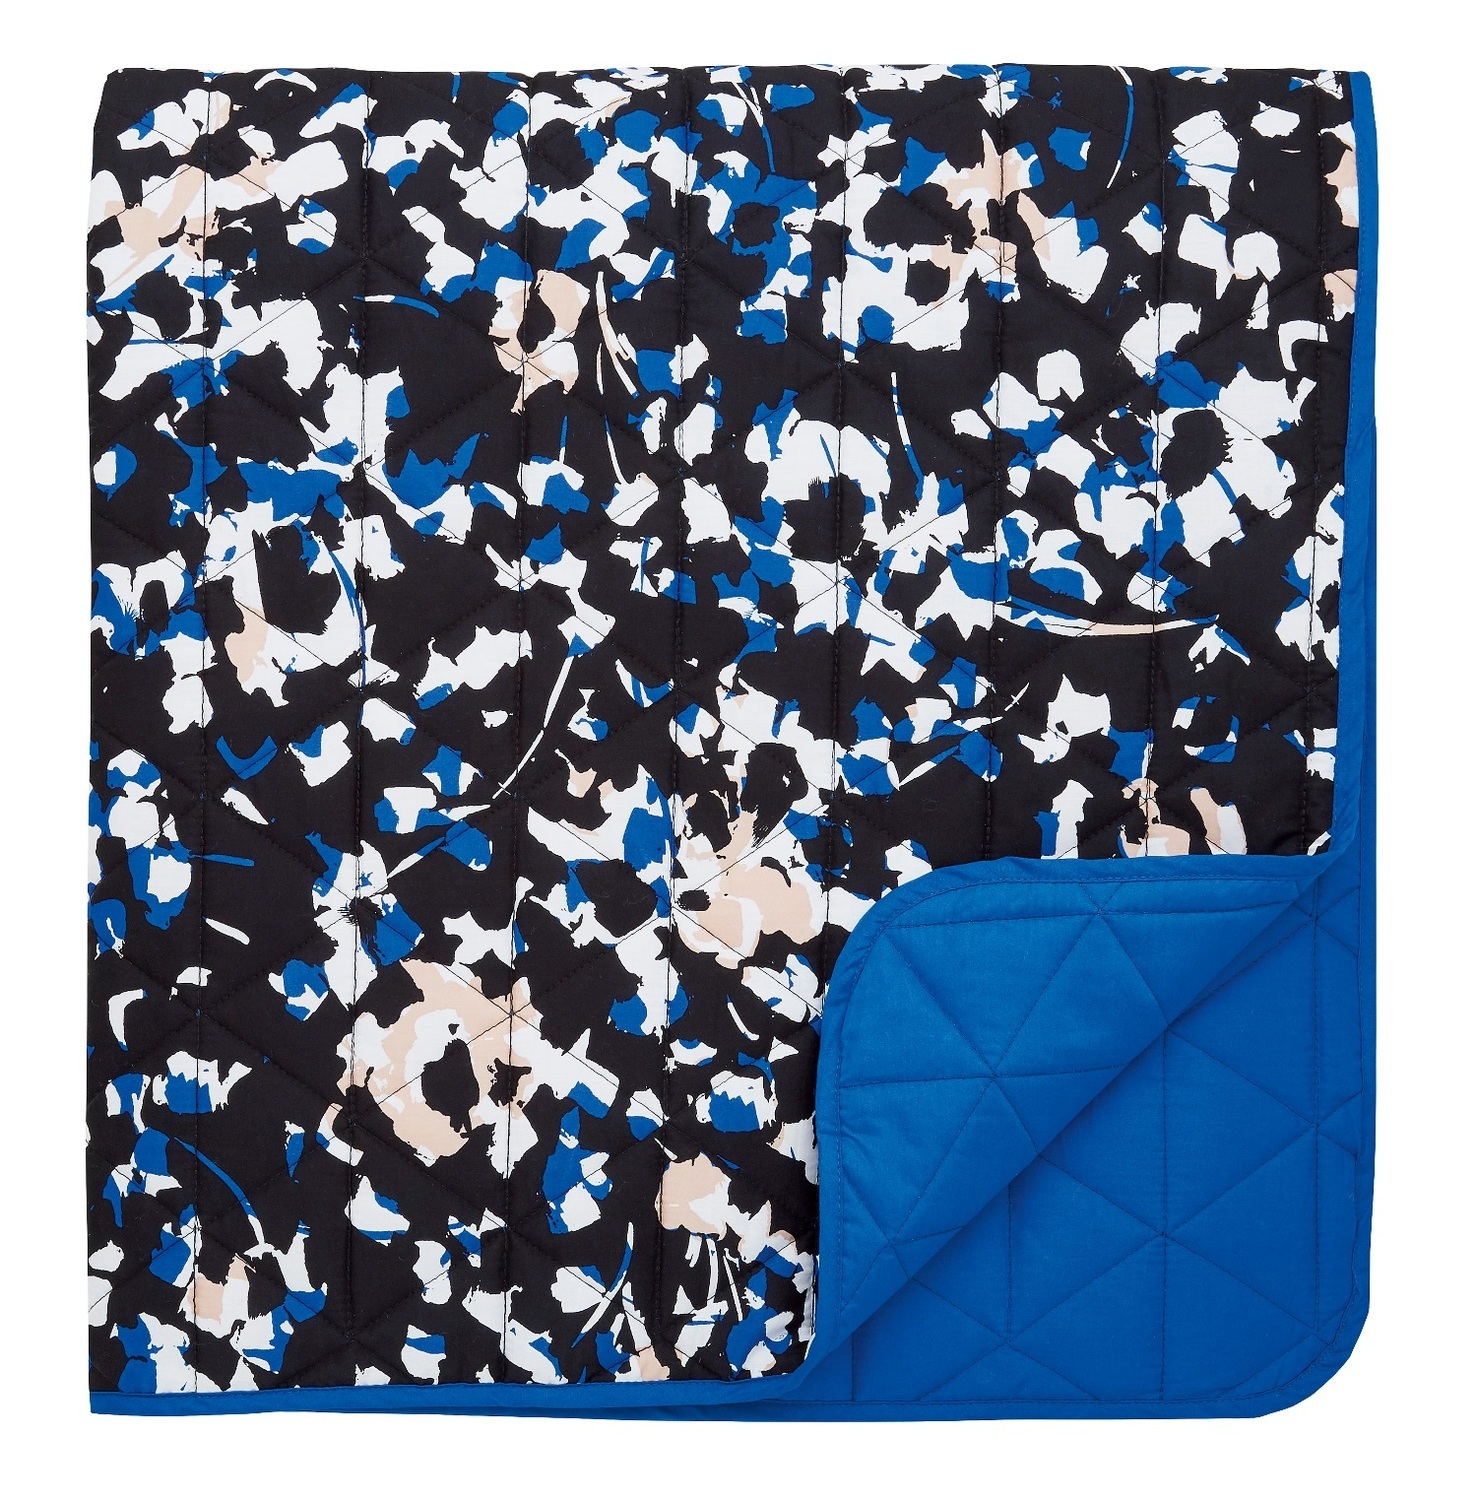 DKNY Street Art Quilted Blanket Throw Black